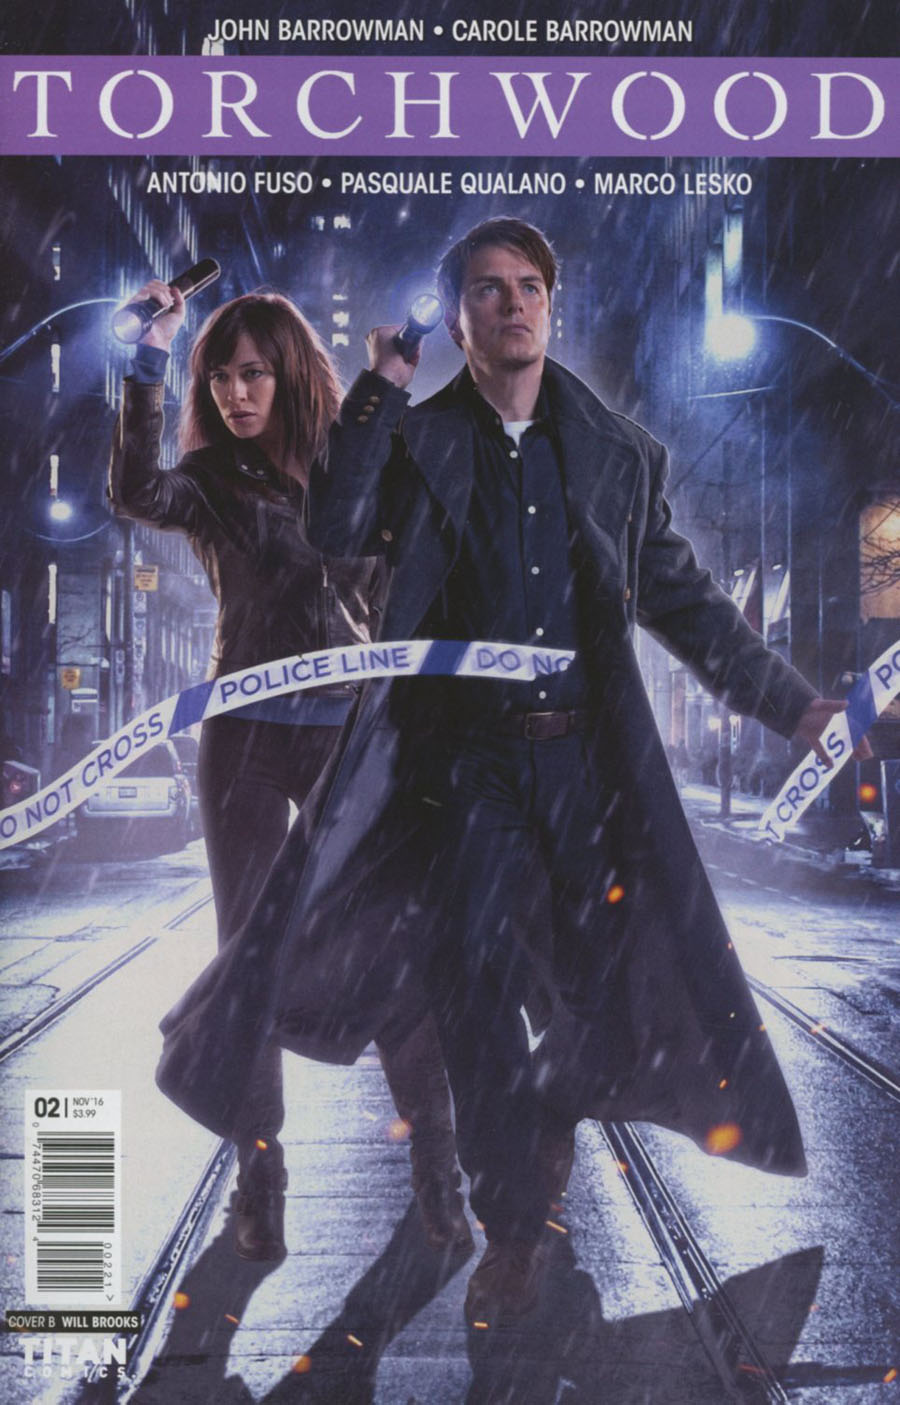 Torchwood Vol 2 #2 Cover B Variant Photo Cover